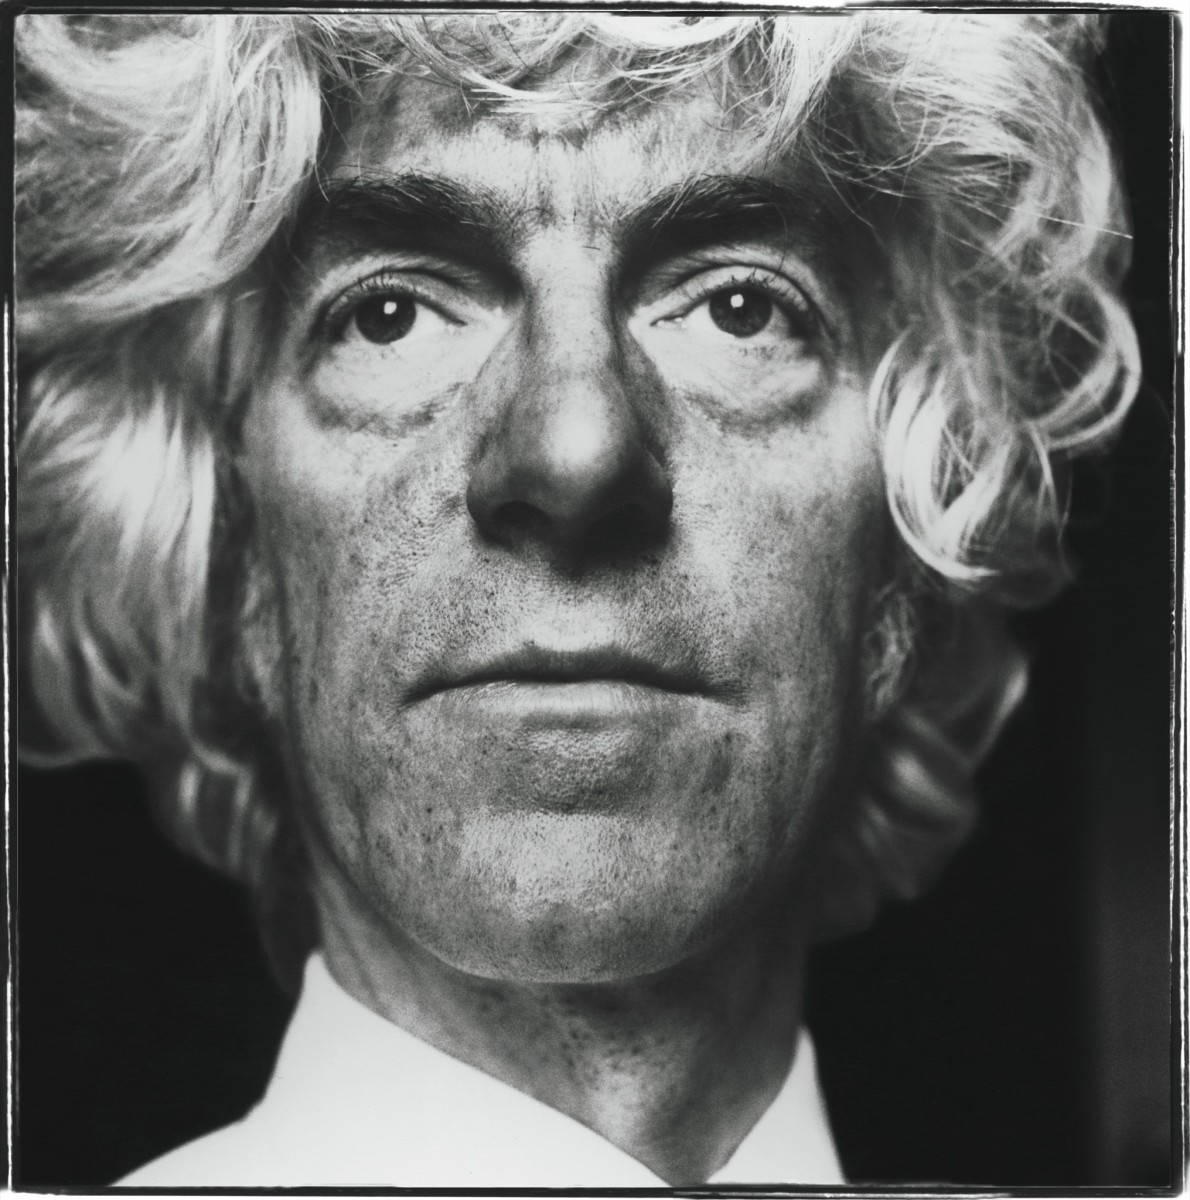 British philosopher Derek Parfit, the author of 'Reasons and Persons', in London, 1991. (Photo by Steve Pyke/Getty Images)